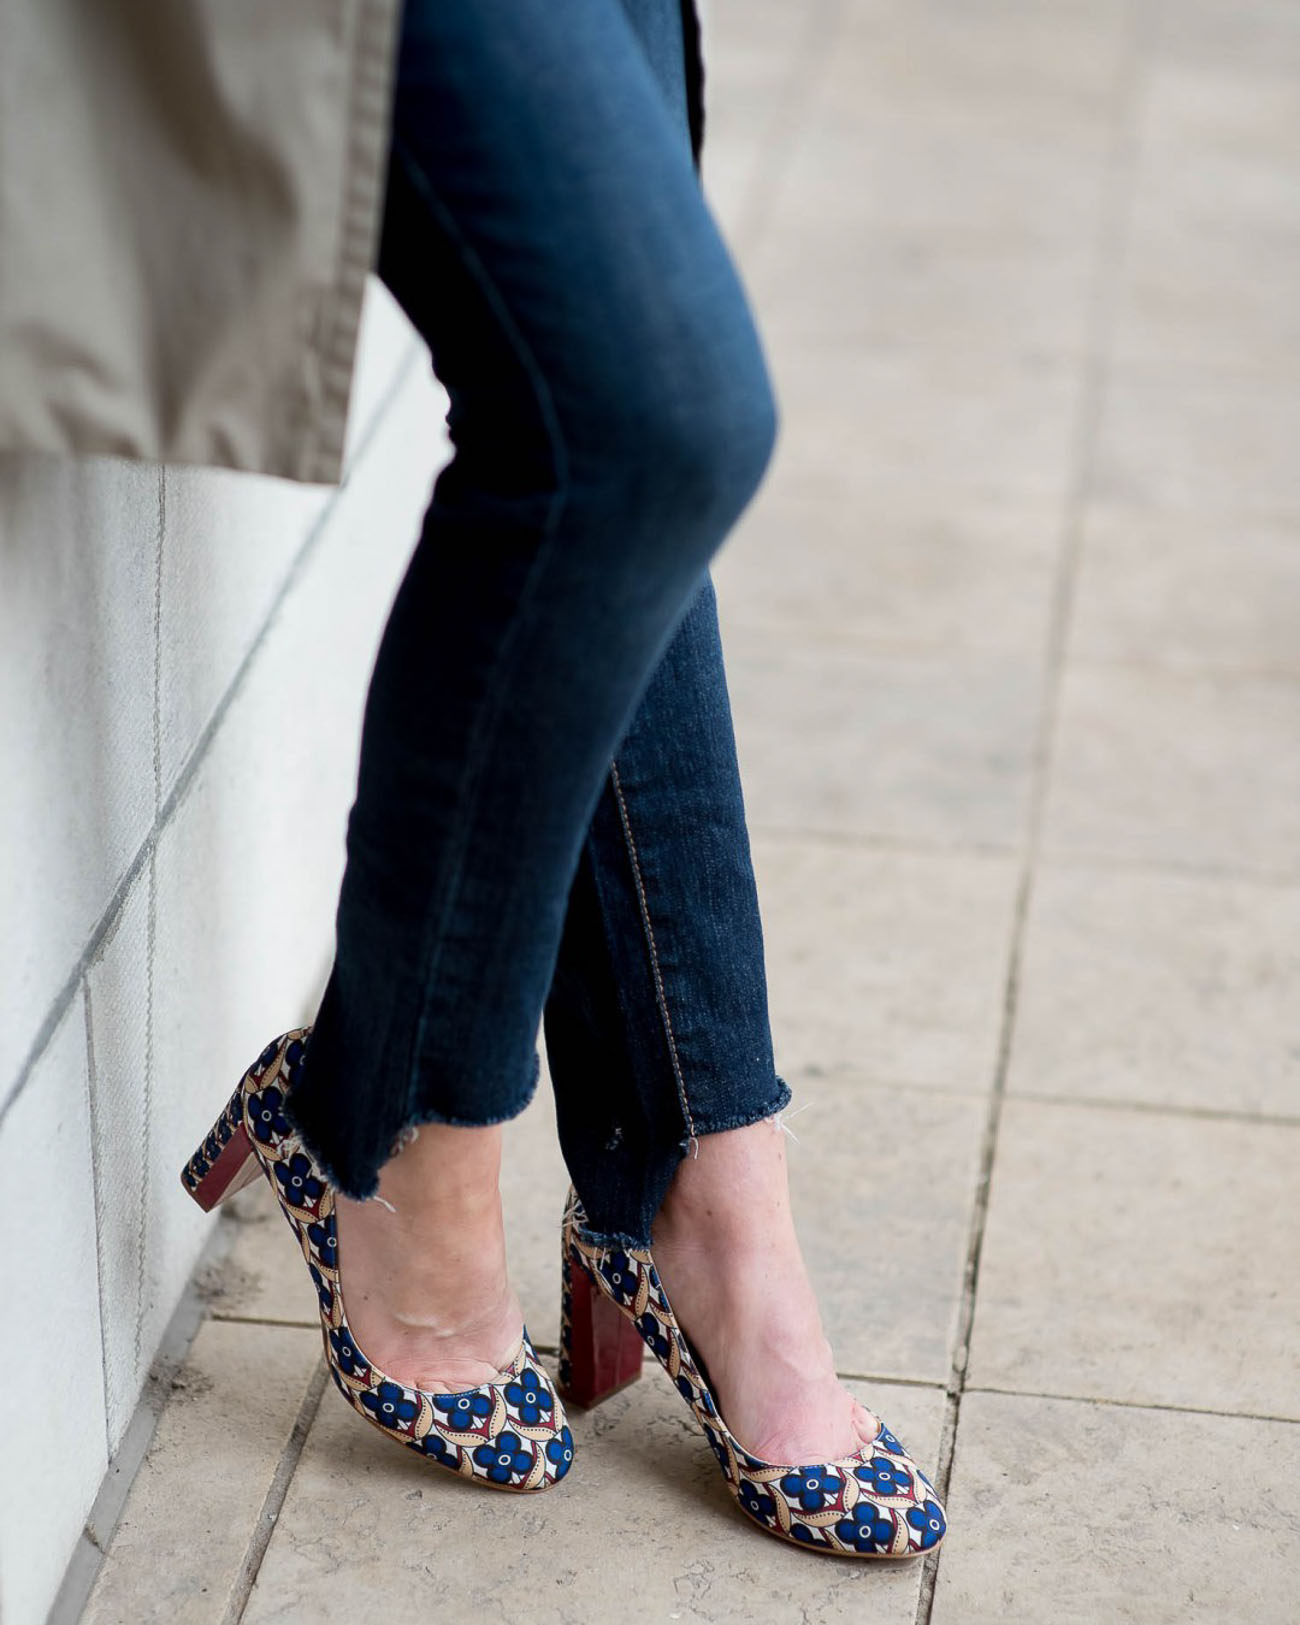 staggered-hem-tutorial-for-jeans-the-blog-societies-1-of-1